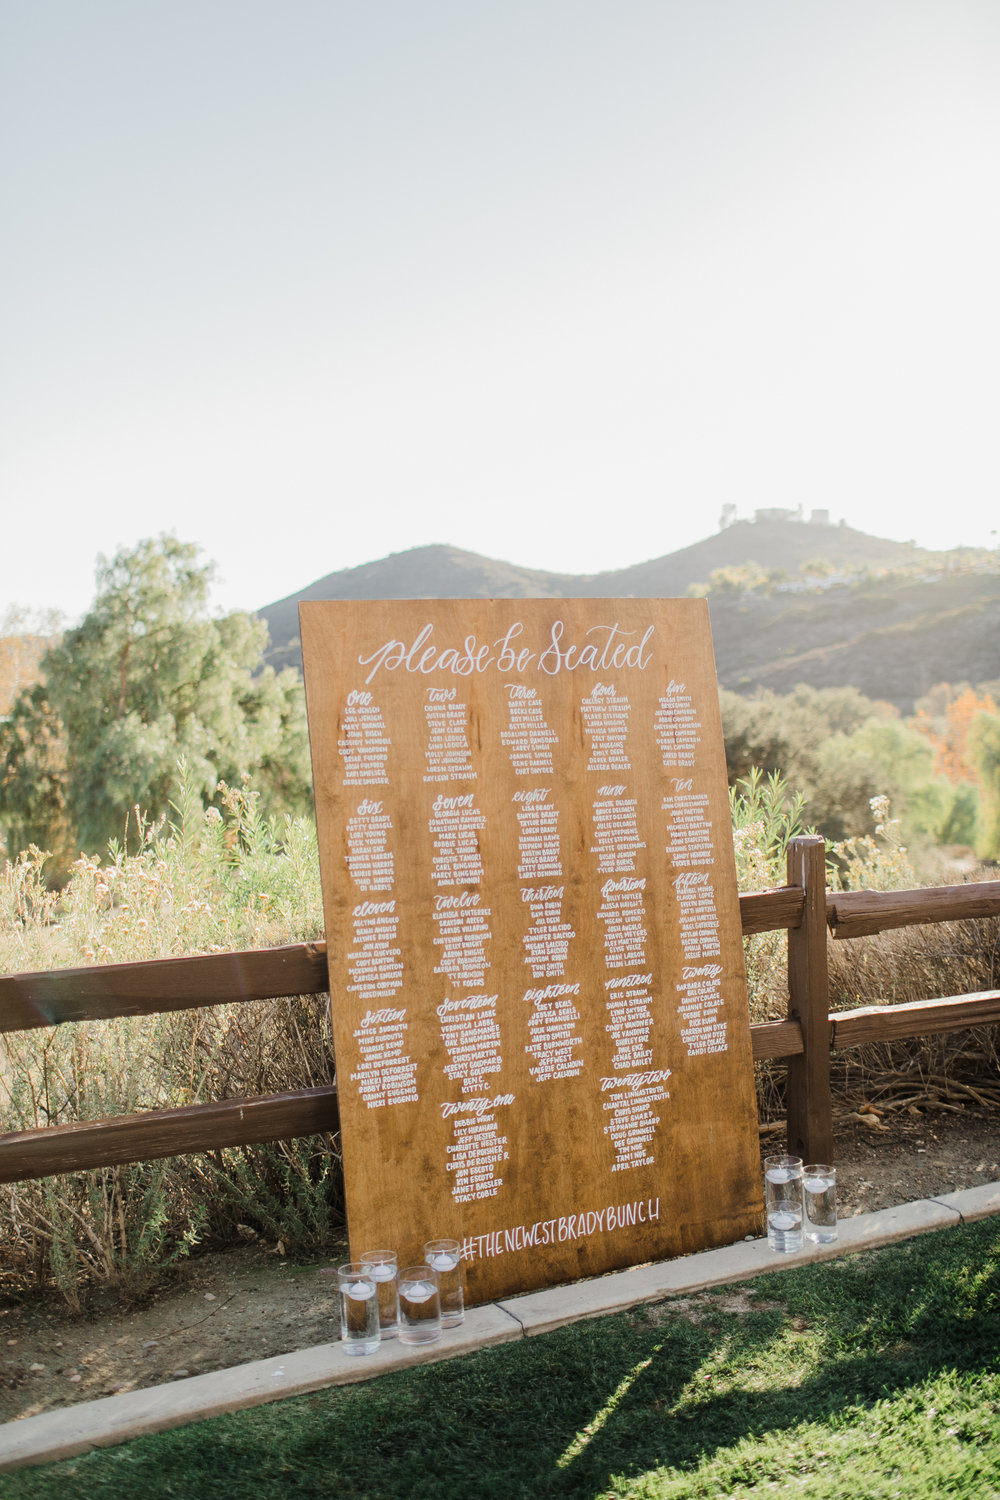 This is my large wood seating chart. it is approximately 4ft wide by 6ft tall. it can fit up to 250 guest names nicely.